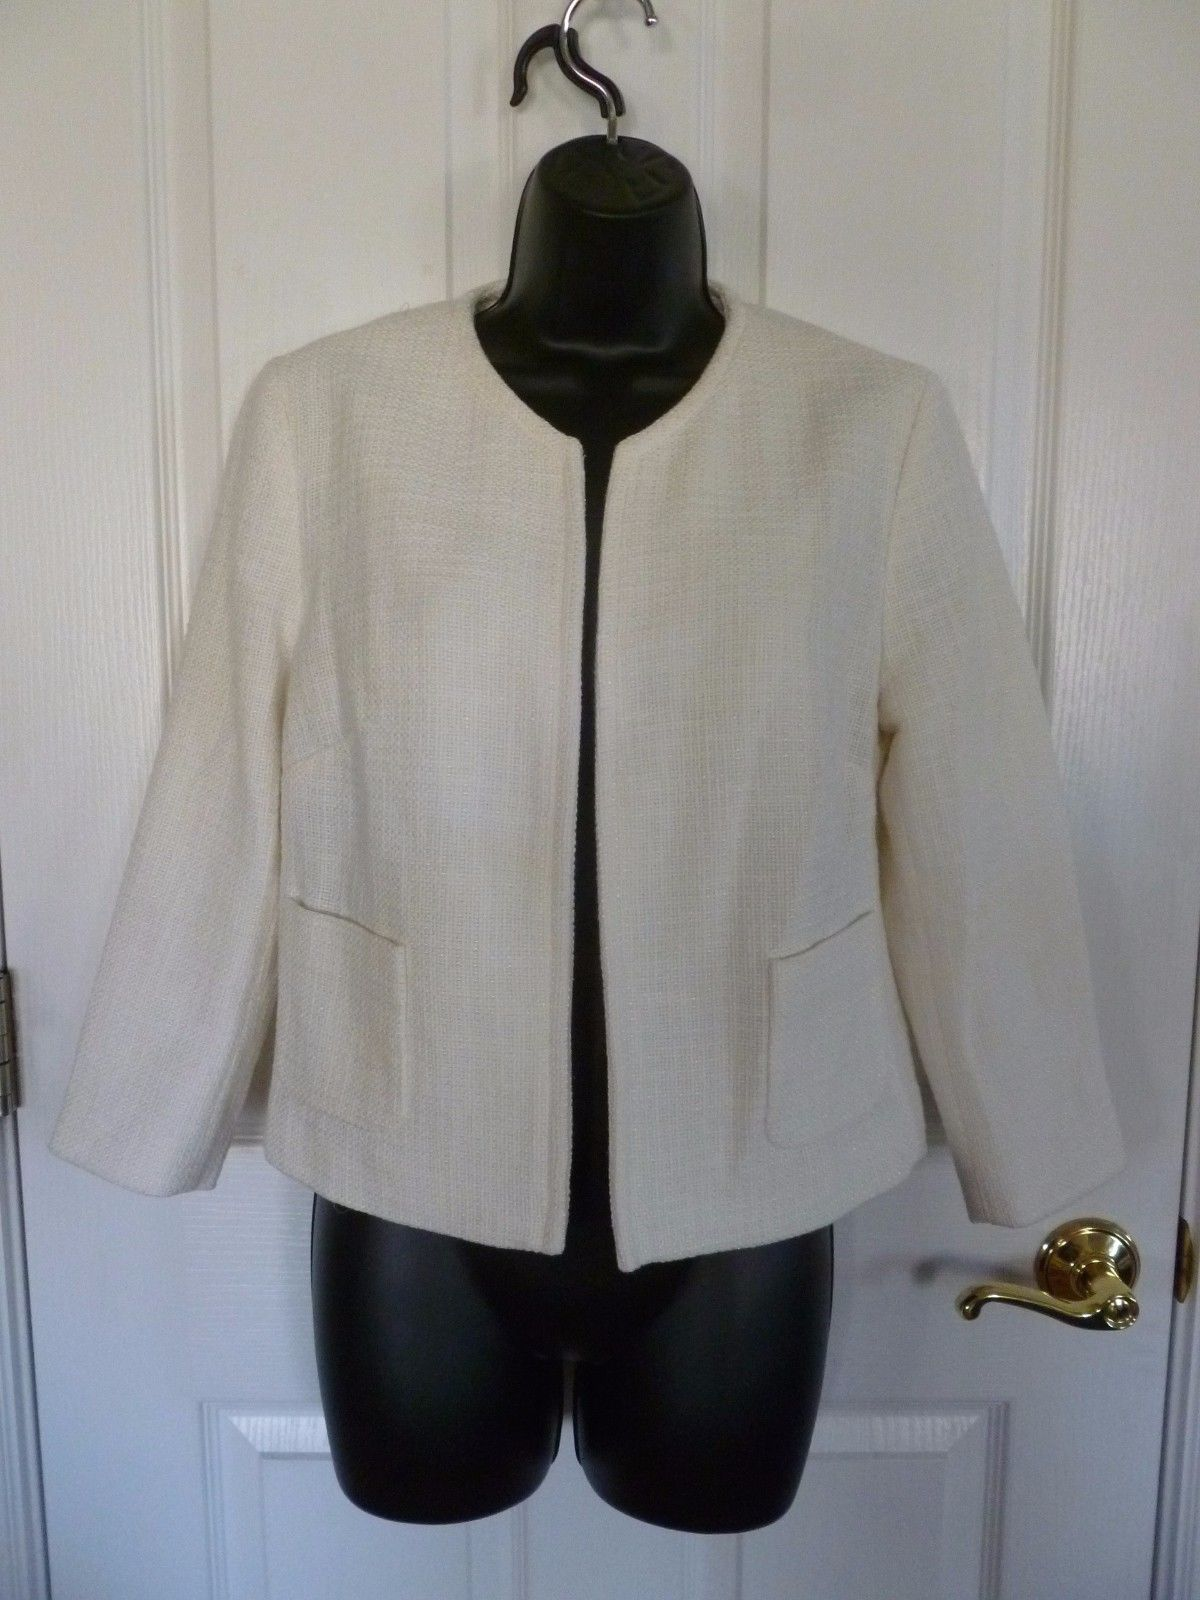 Primary image for GAP Crop Jacket, Cream, Size 8, NWT,   J2